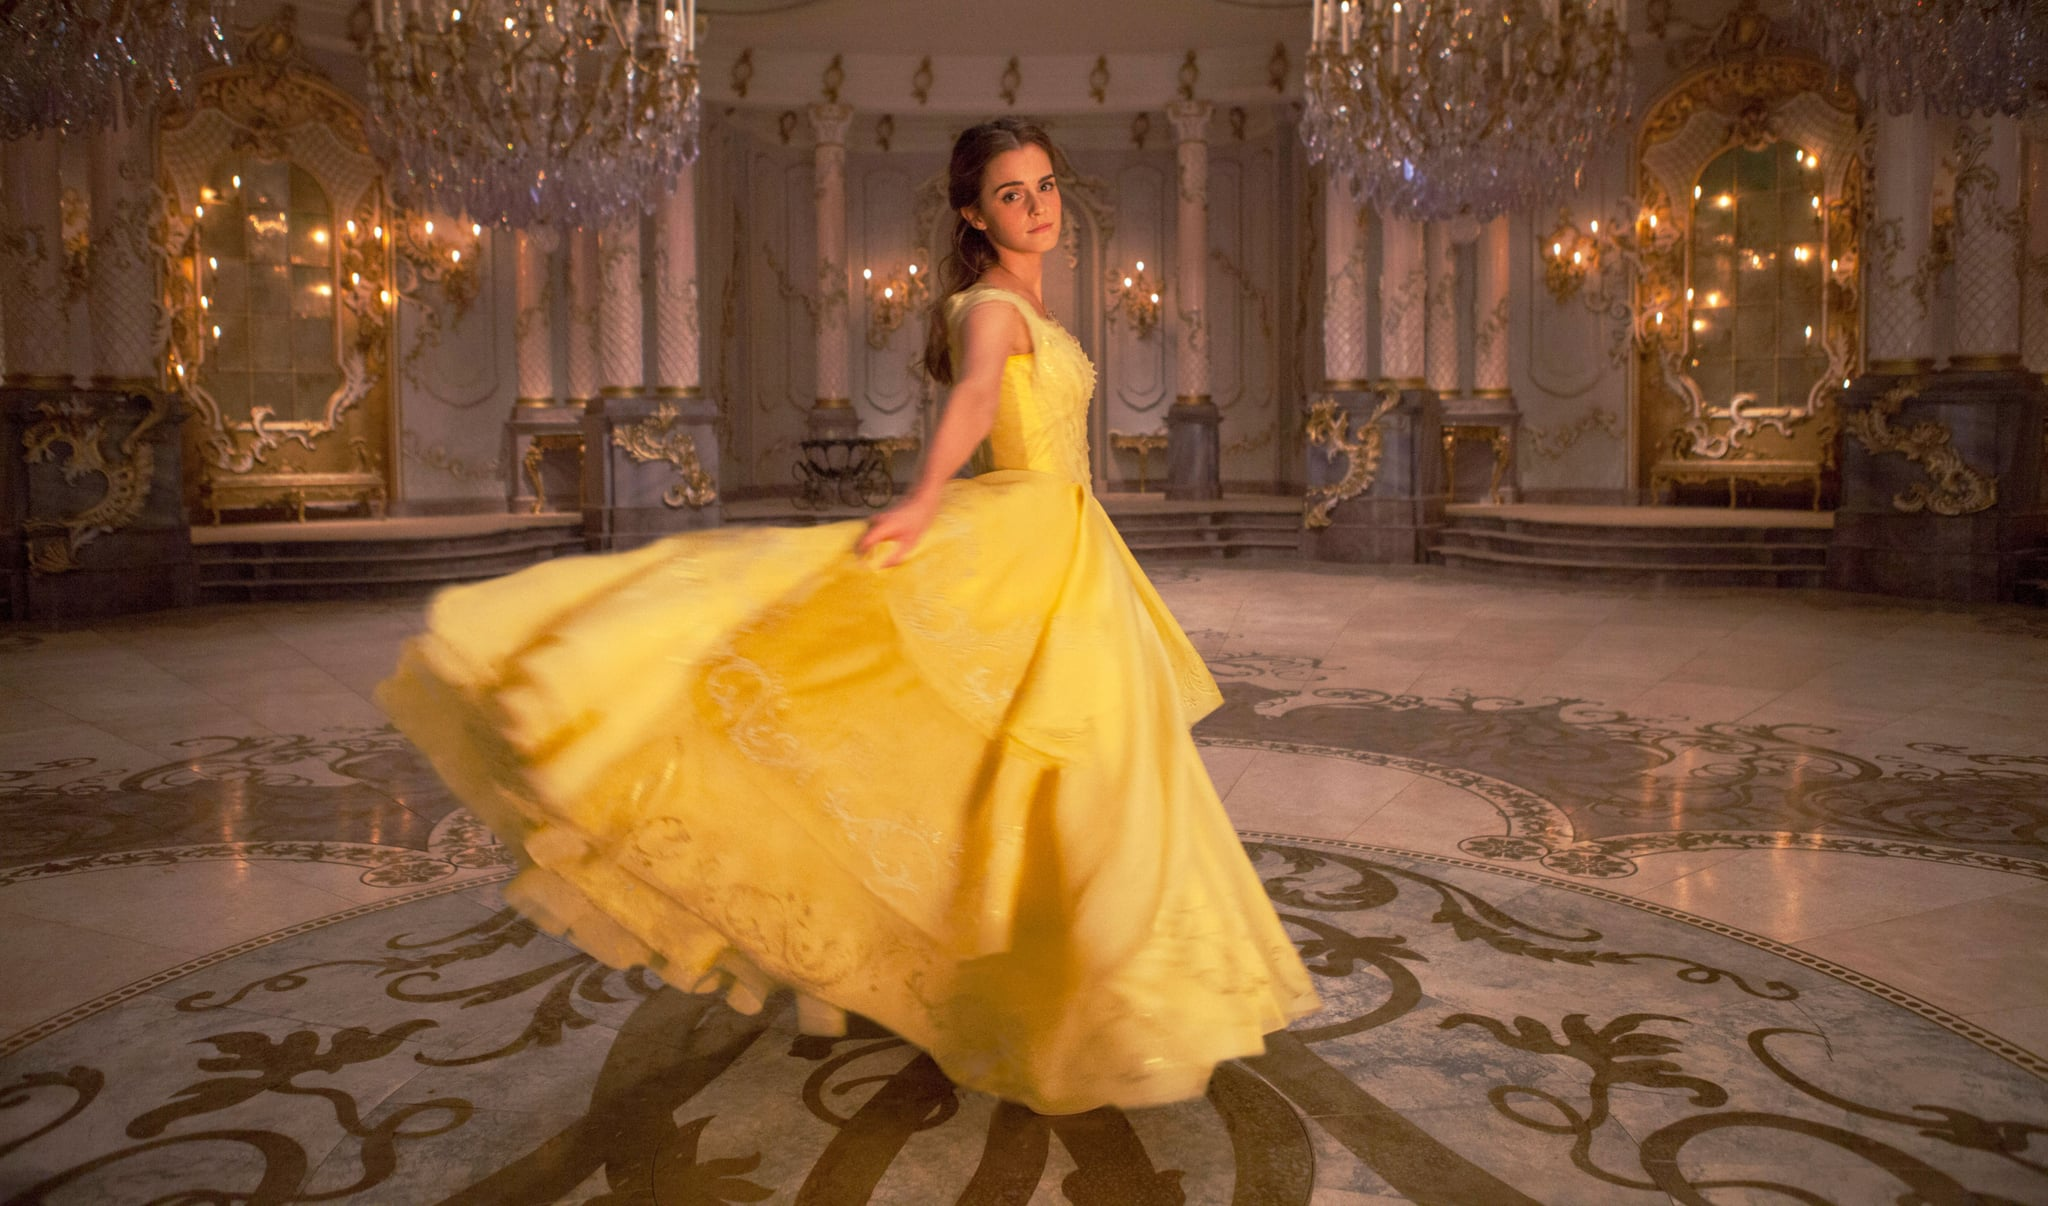 Why Disney is Risking $300 Million on 'Beauty and the Beast'